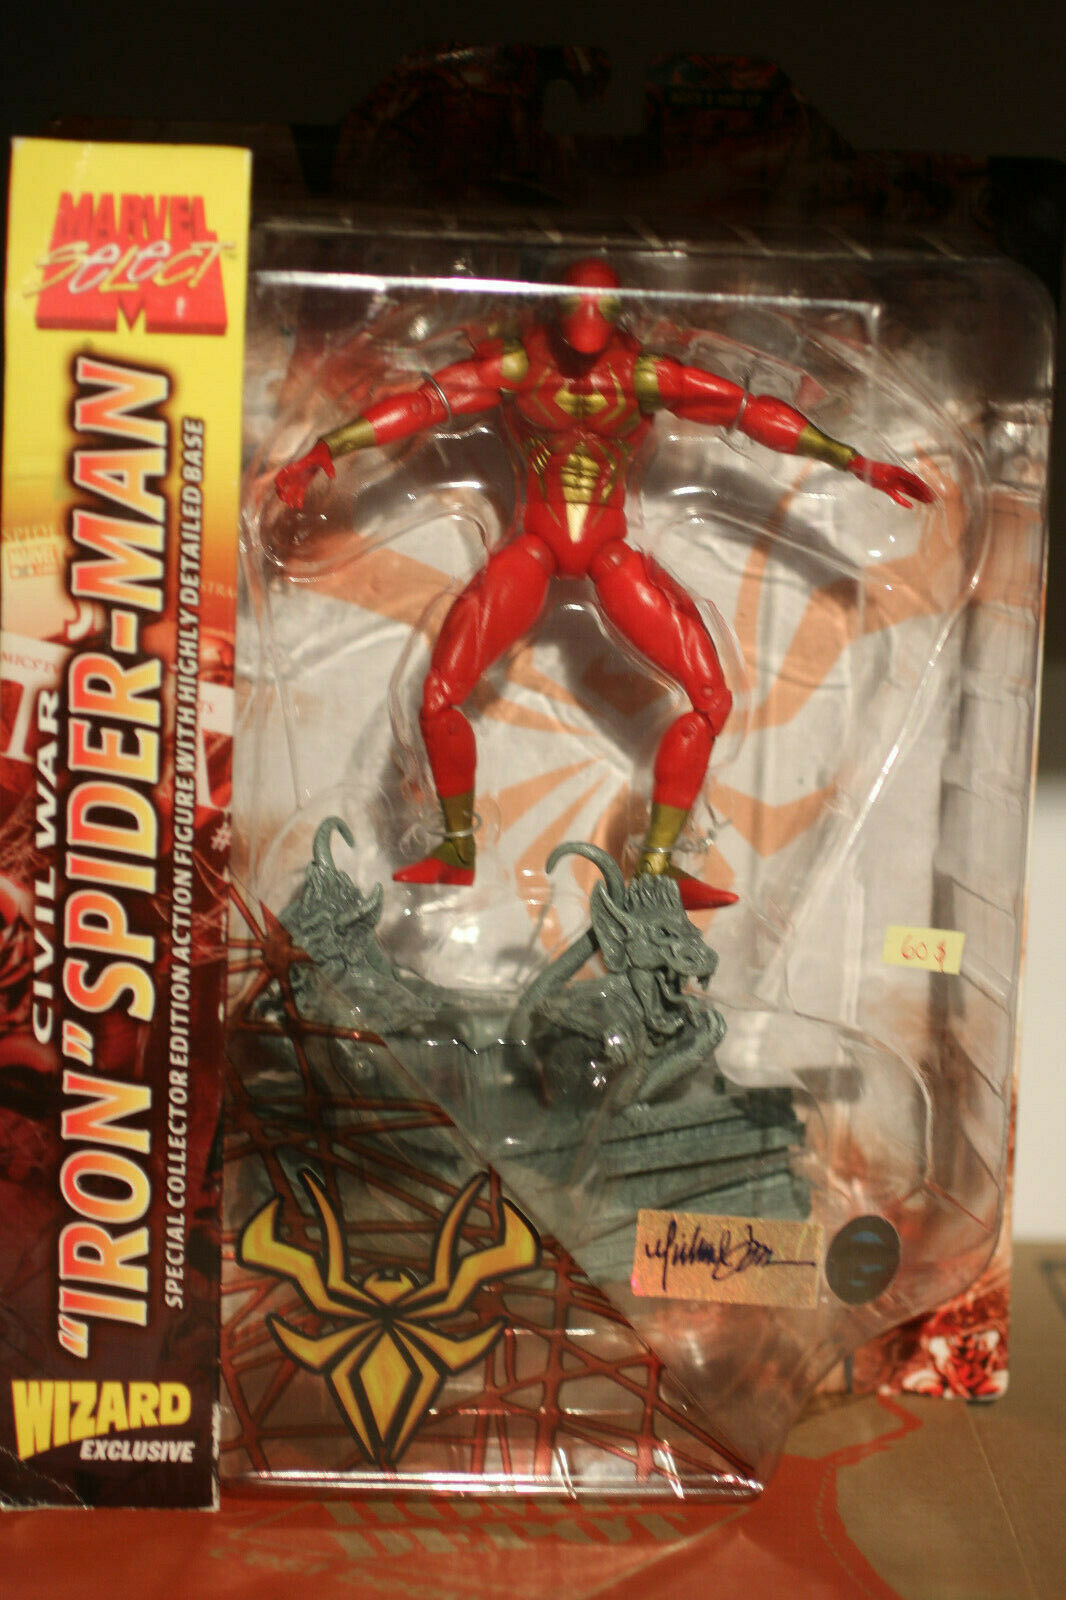 Marvel Select Iron Spider-Man Wizard Exclusive signed action figure toy UNOPENED